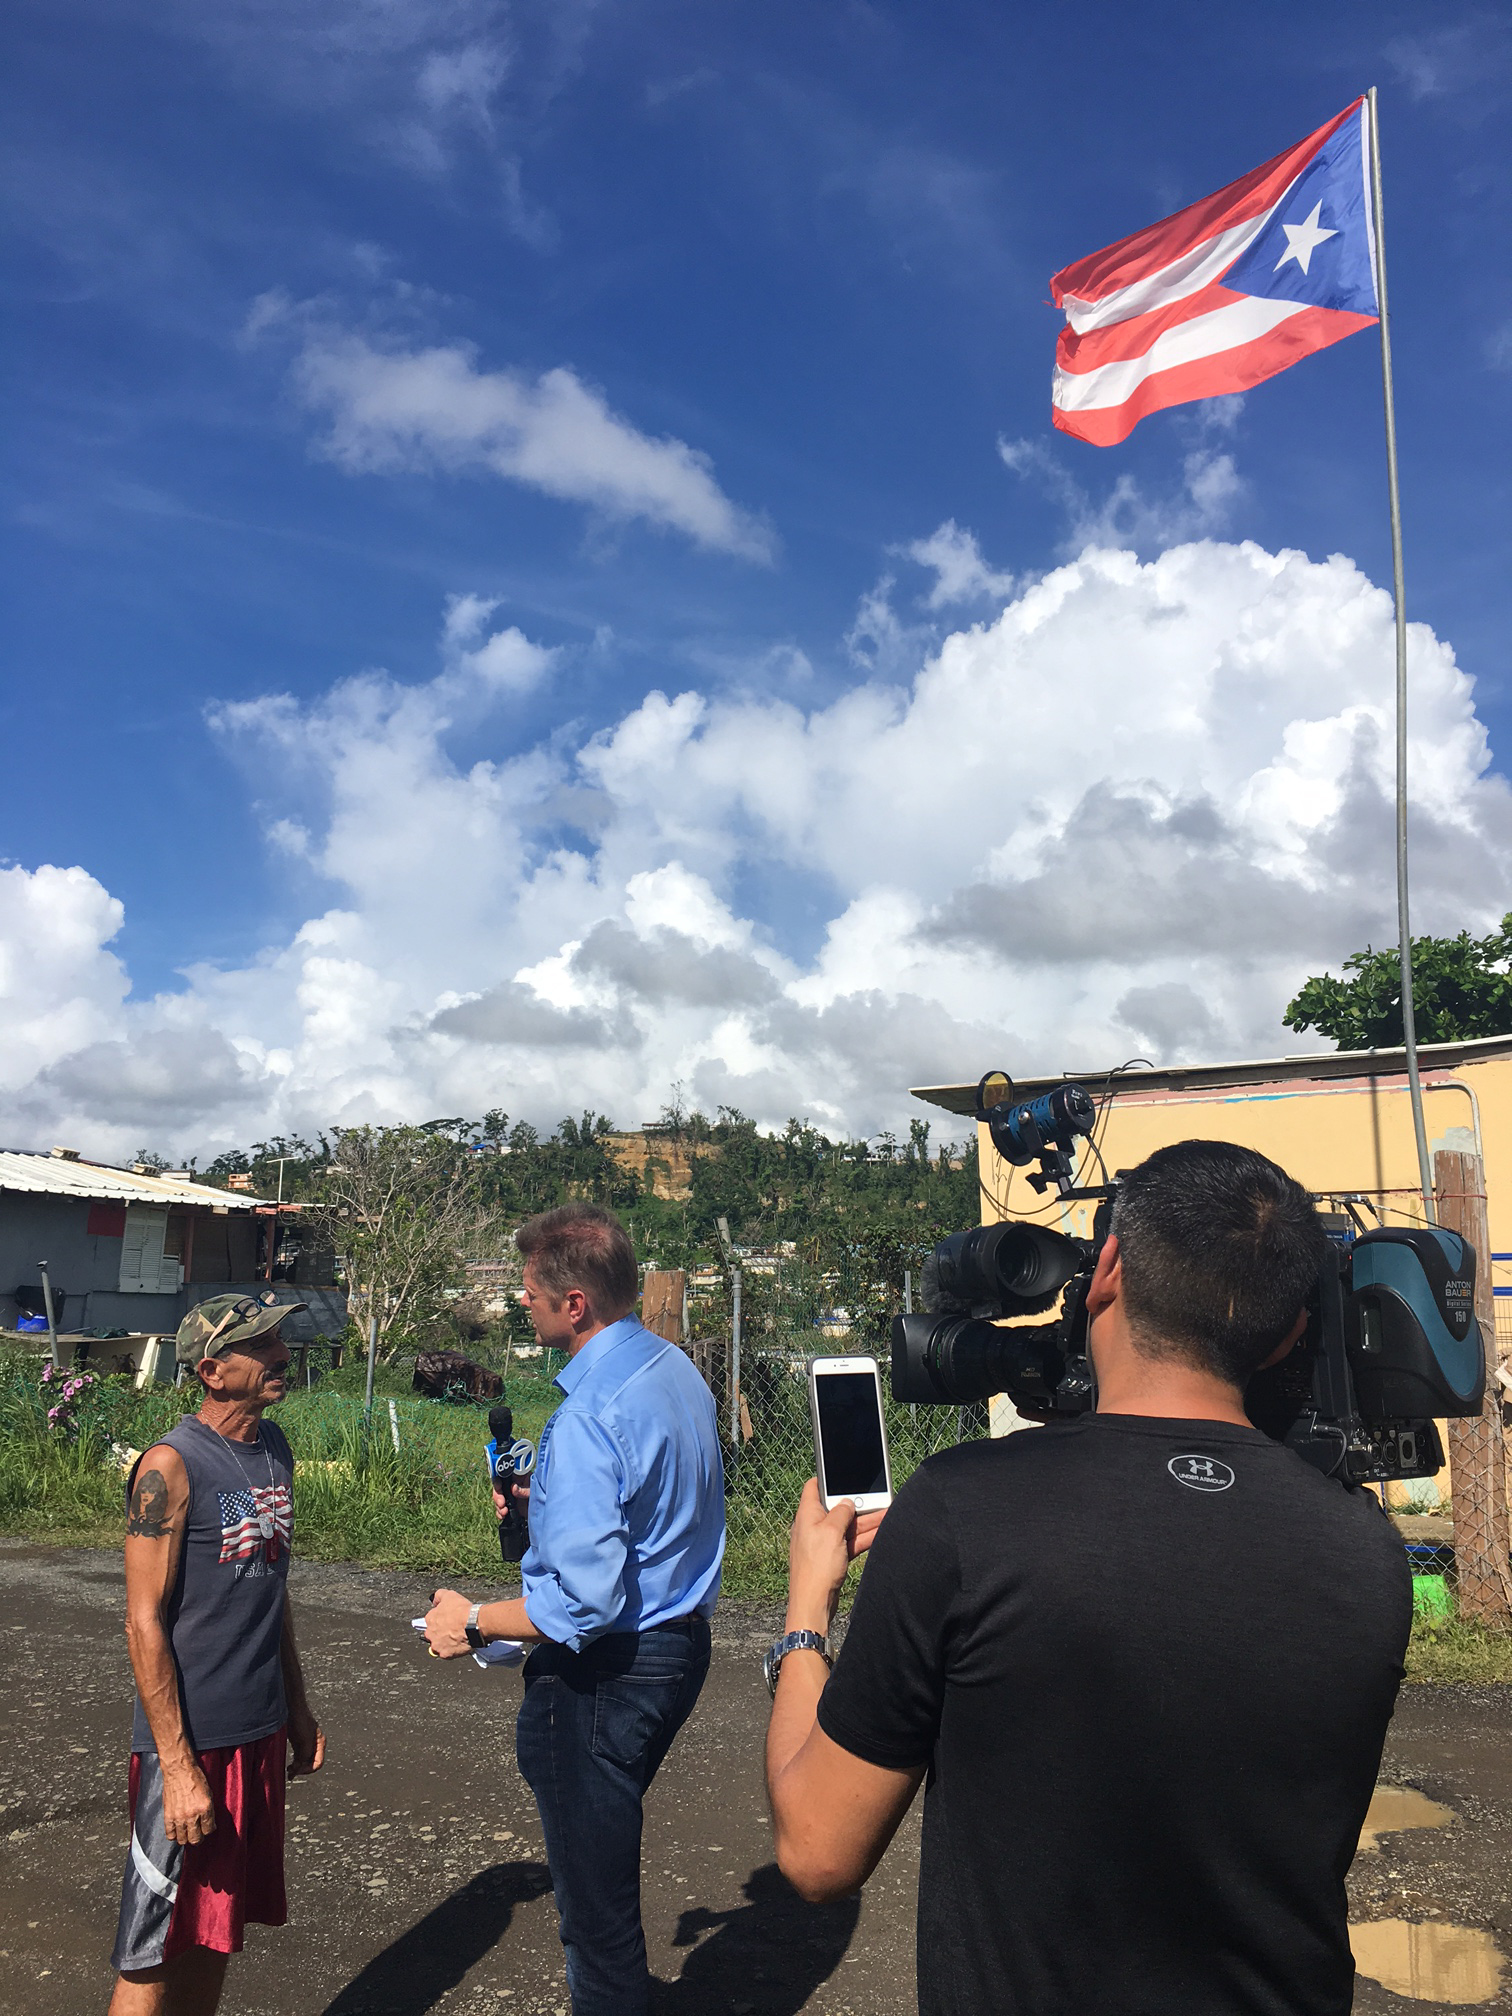 <div class='meta'><div class='origin-logo' data-origin='WLS'></div><span class='caption-text' data-credit=''>Vietnam veteran Jose Solano survived Hurricane Maria after fleeing to a school shelter in Villa Esperanza</span></div>